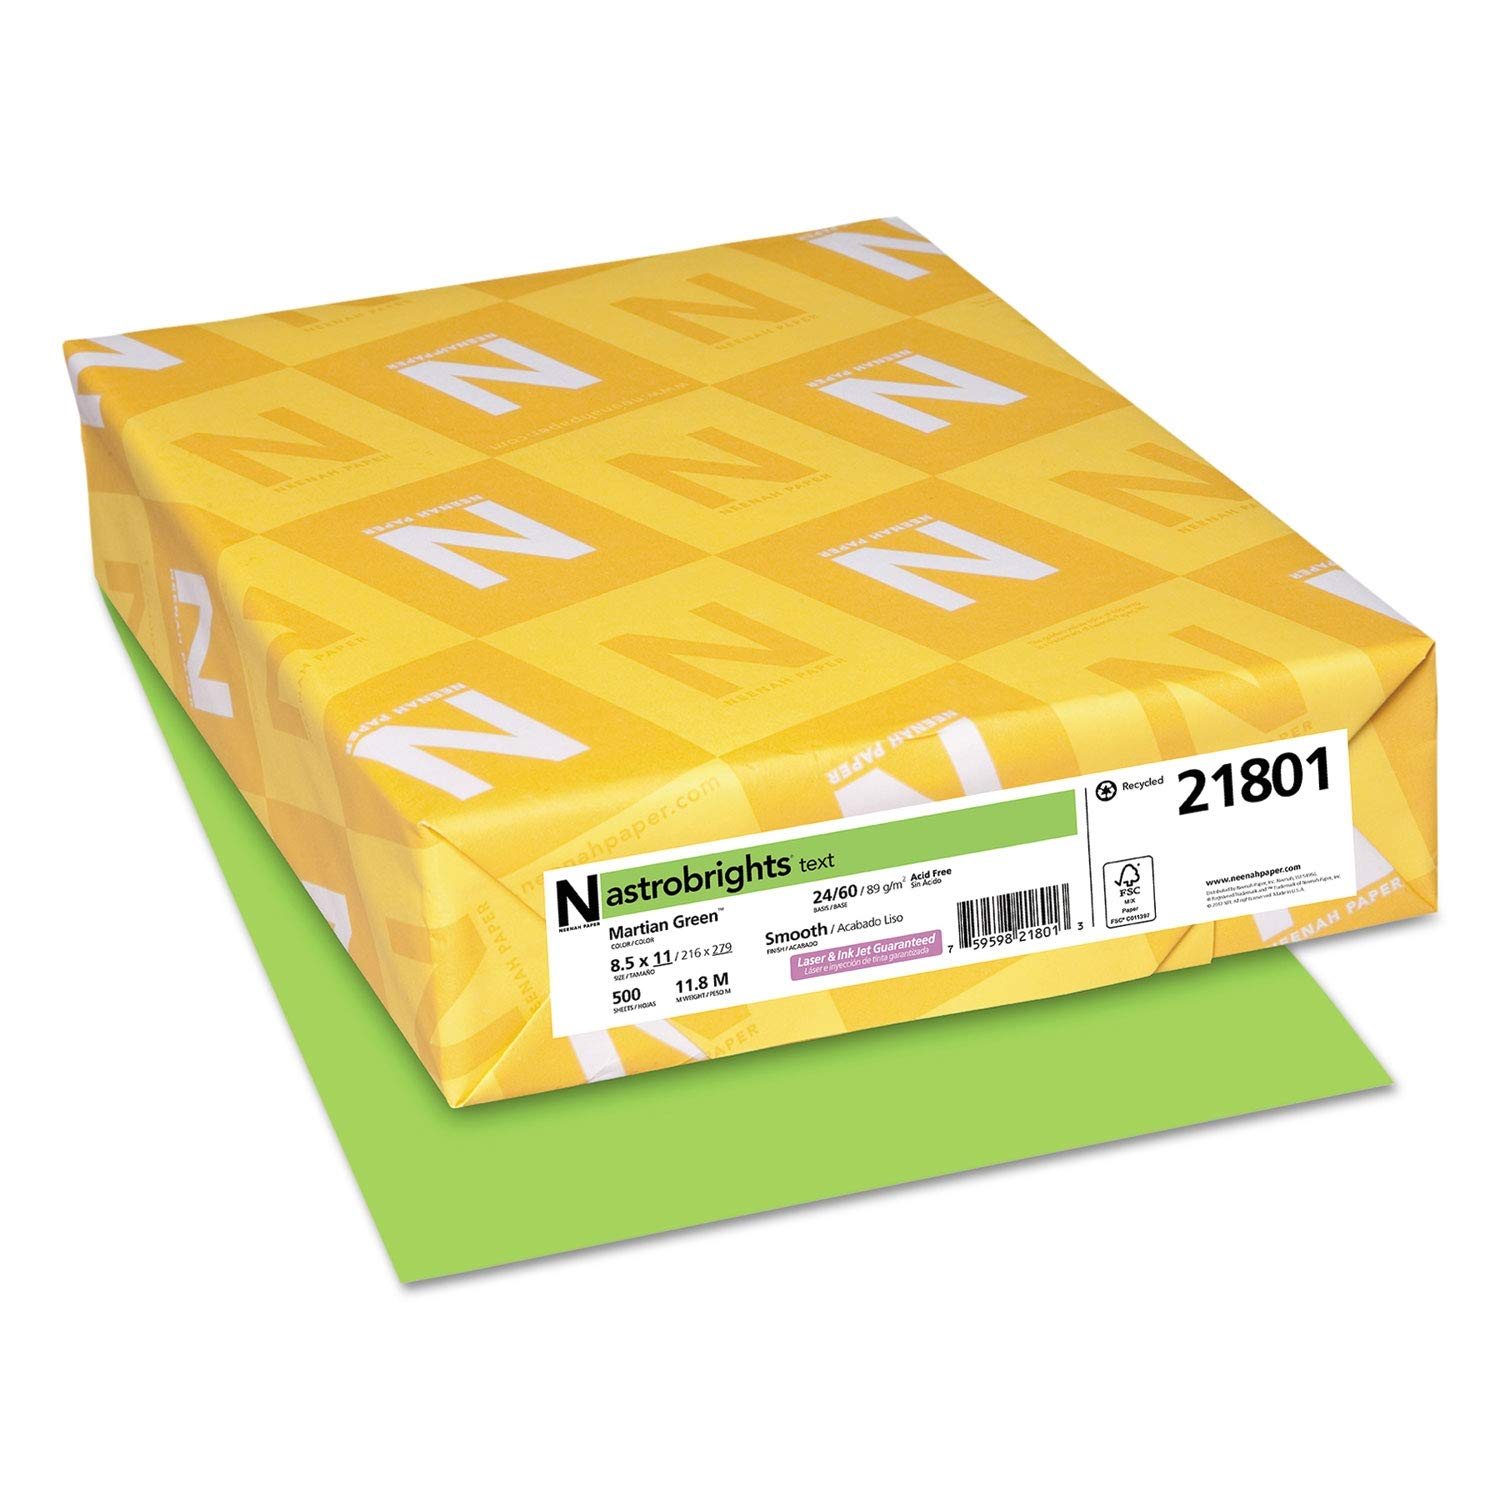 Astrobrights Color Paper, 24lb, 8 1/2 x 11, Martian Green, 500 Sheets - 21801 (Pack of 2)